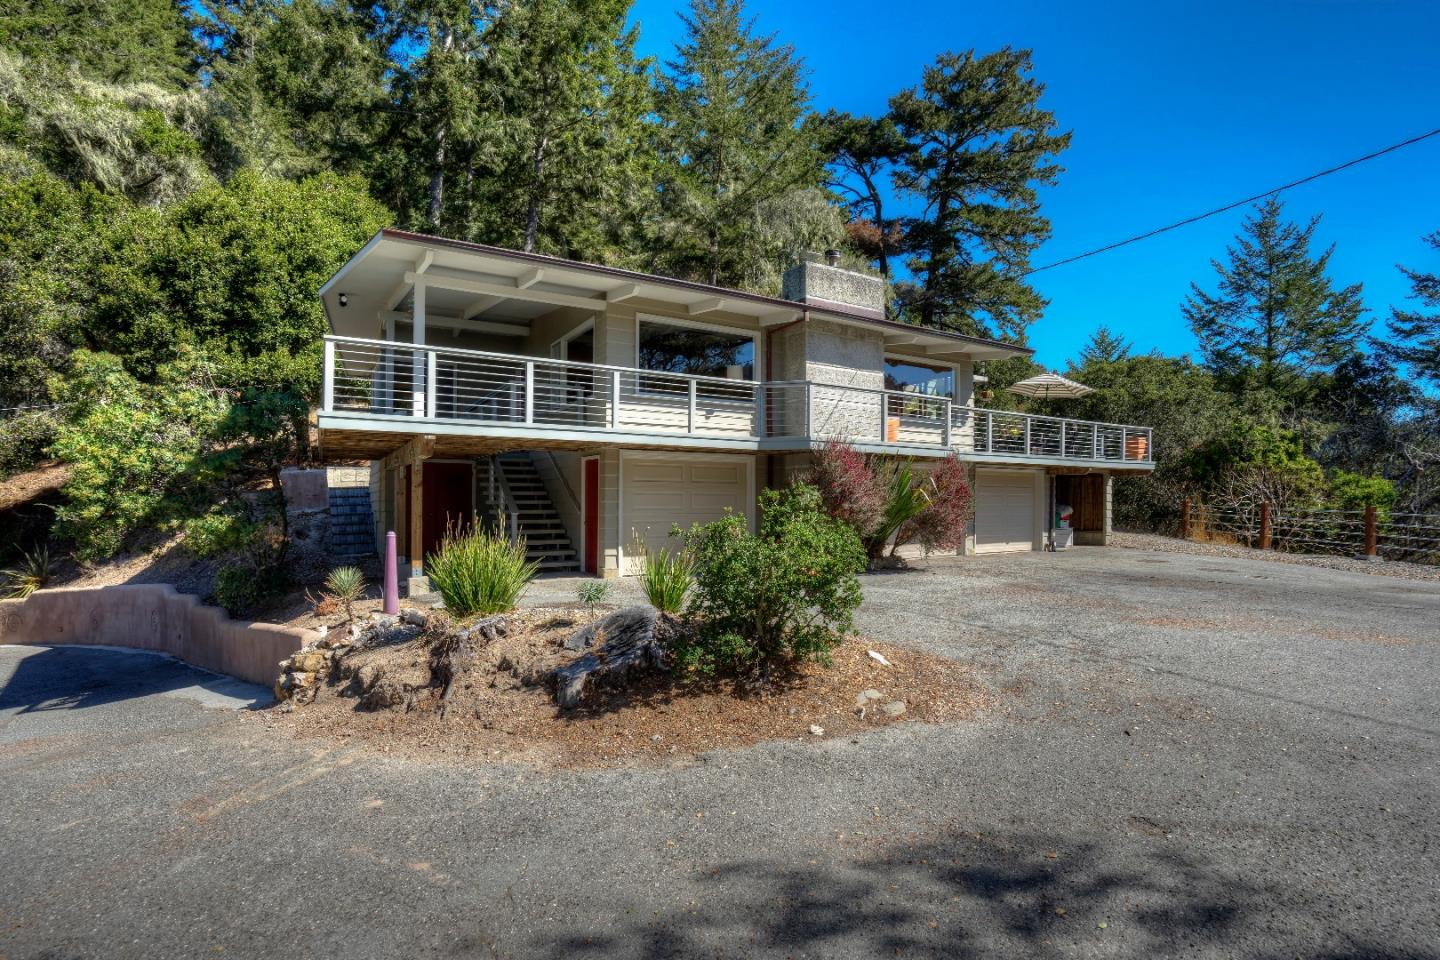 Single Family Home for Sale at 4399 Pescadero Creek Road Pescadero, California 94060 United States